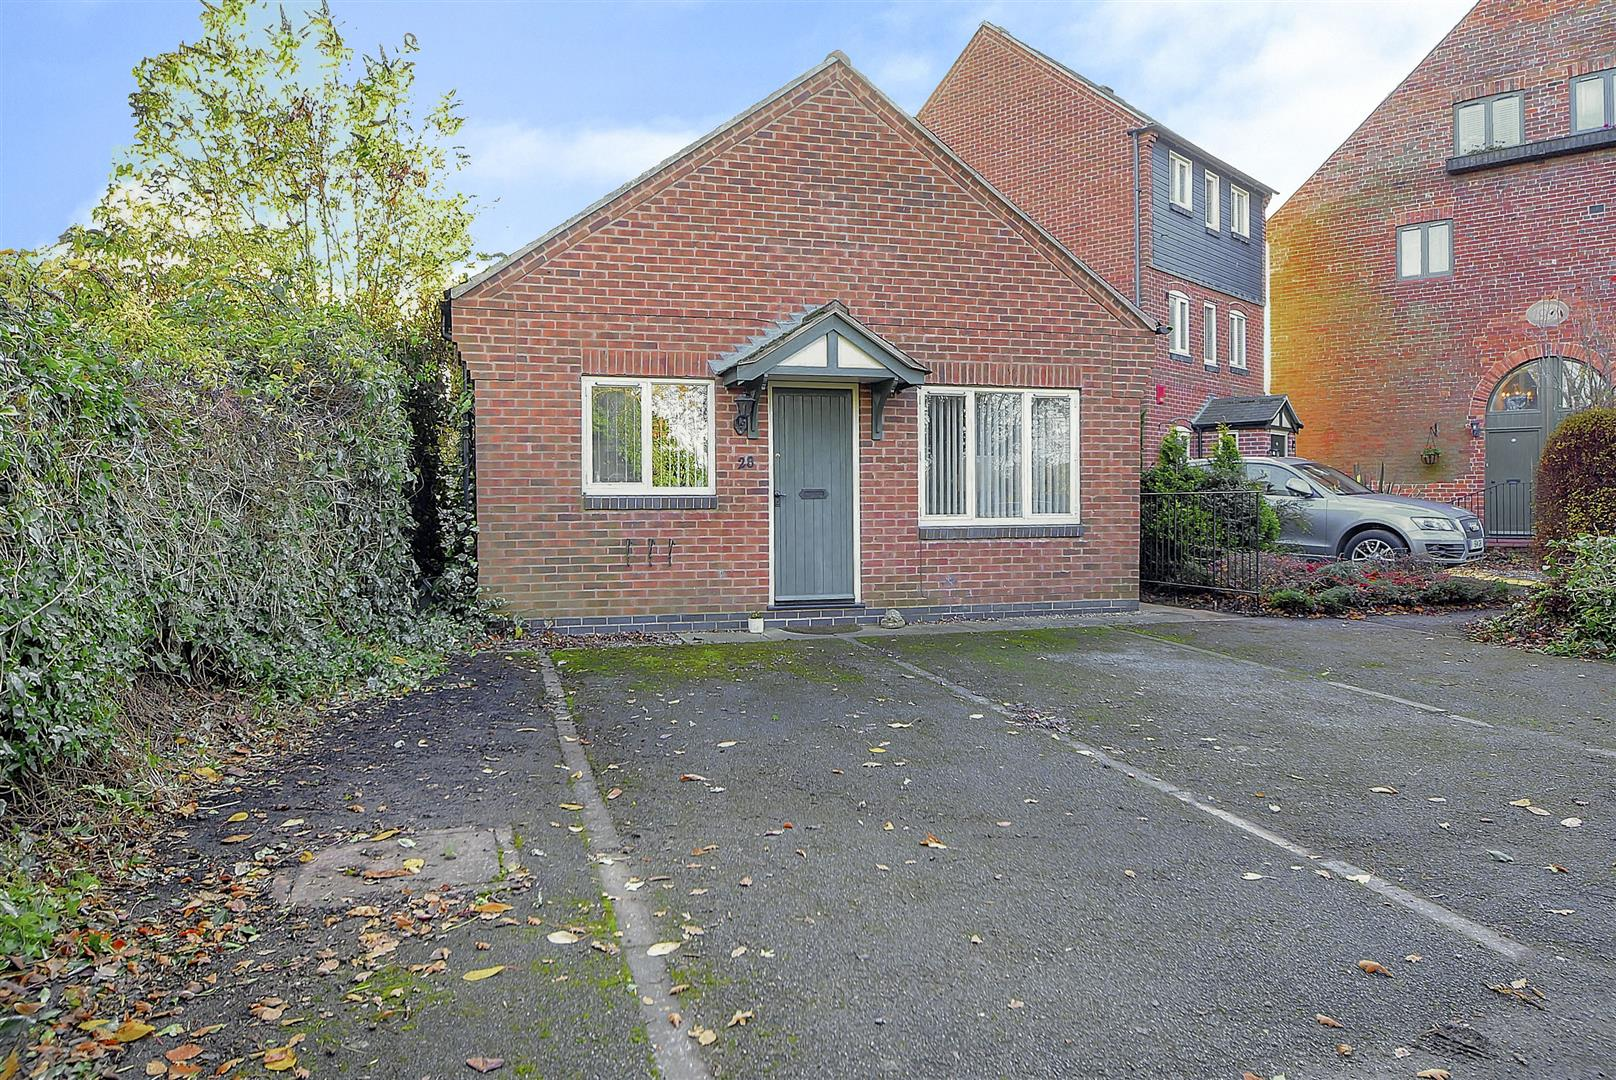 1 Bedroom Detached House for sale in The Wharf, Shardlow